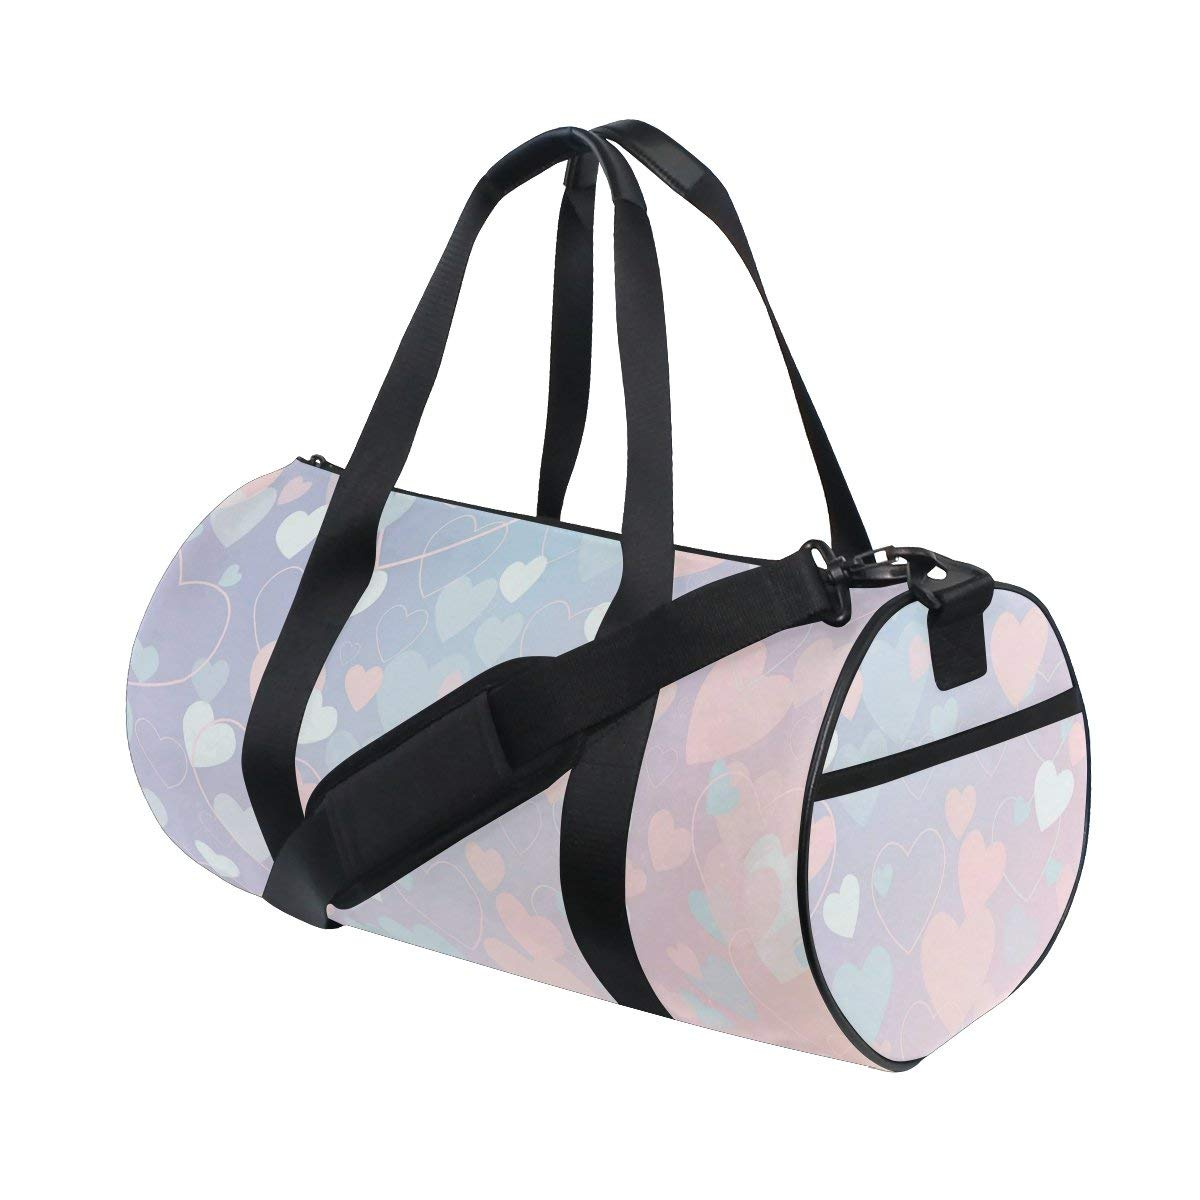 379c1c3937d9 Get Quotations · Naanle Romantic Heart Pattern Valentine Love Gym bag  Sports Travel Duffle Bags for Men Women Boys